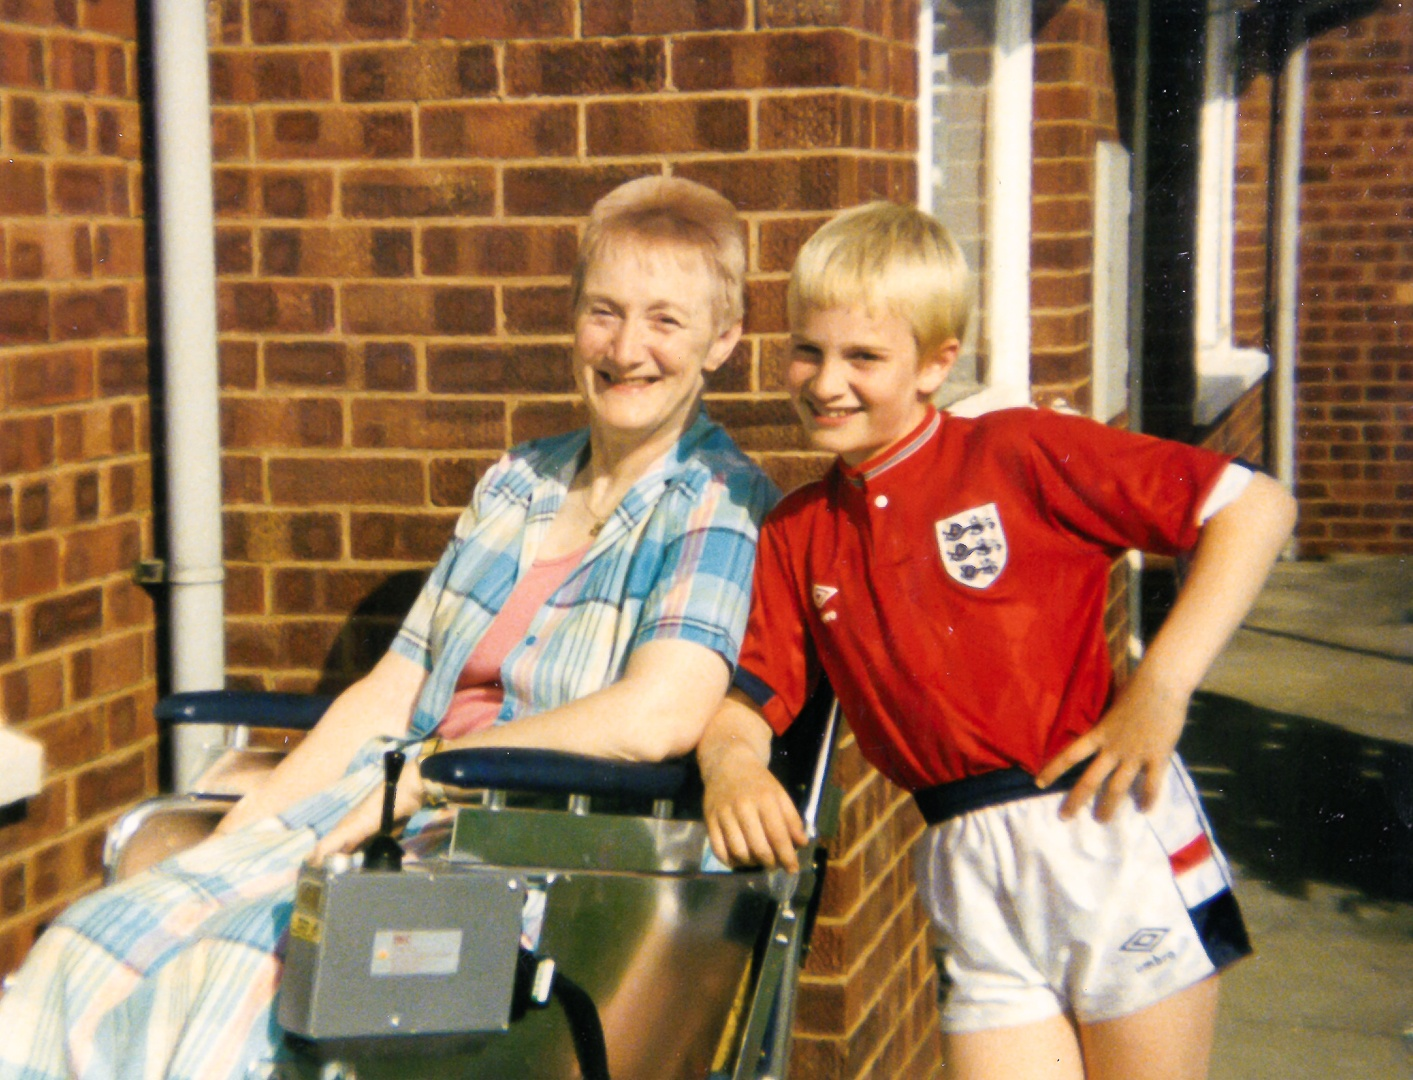 Alex Shaw, age 10, and his mum